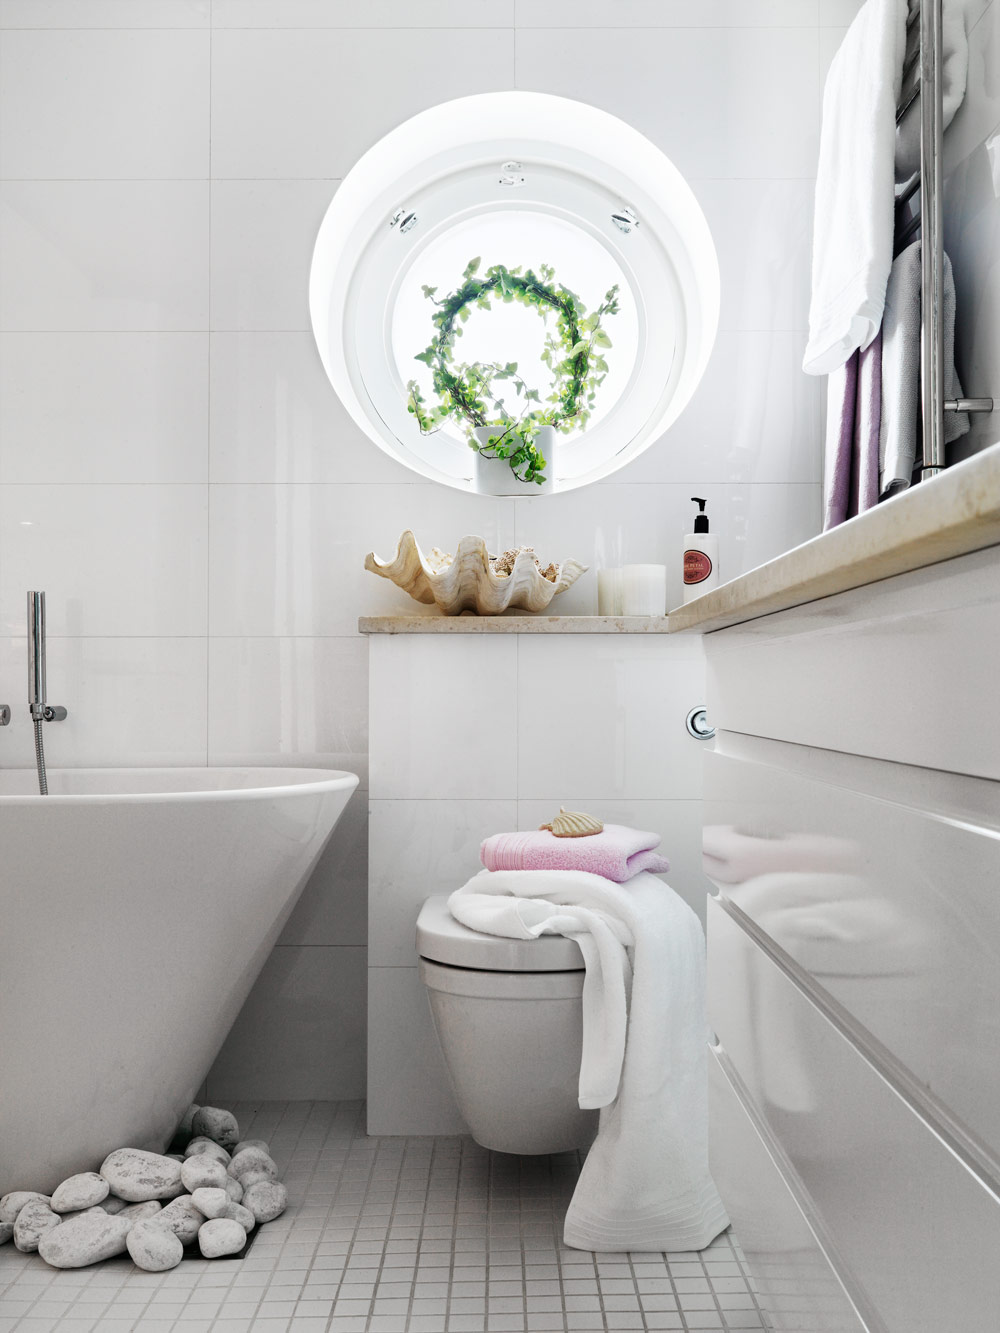 Stylish small bathroom with an unusual decor digsdigs for Small bathroom gallery